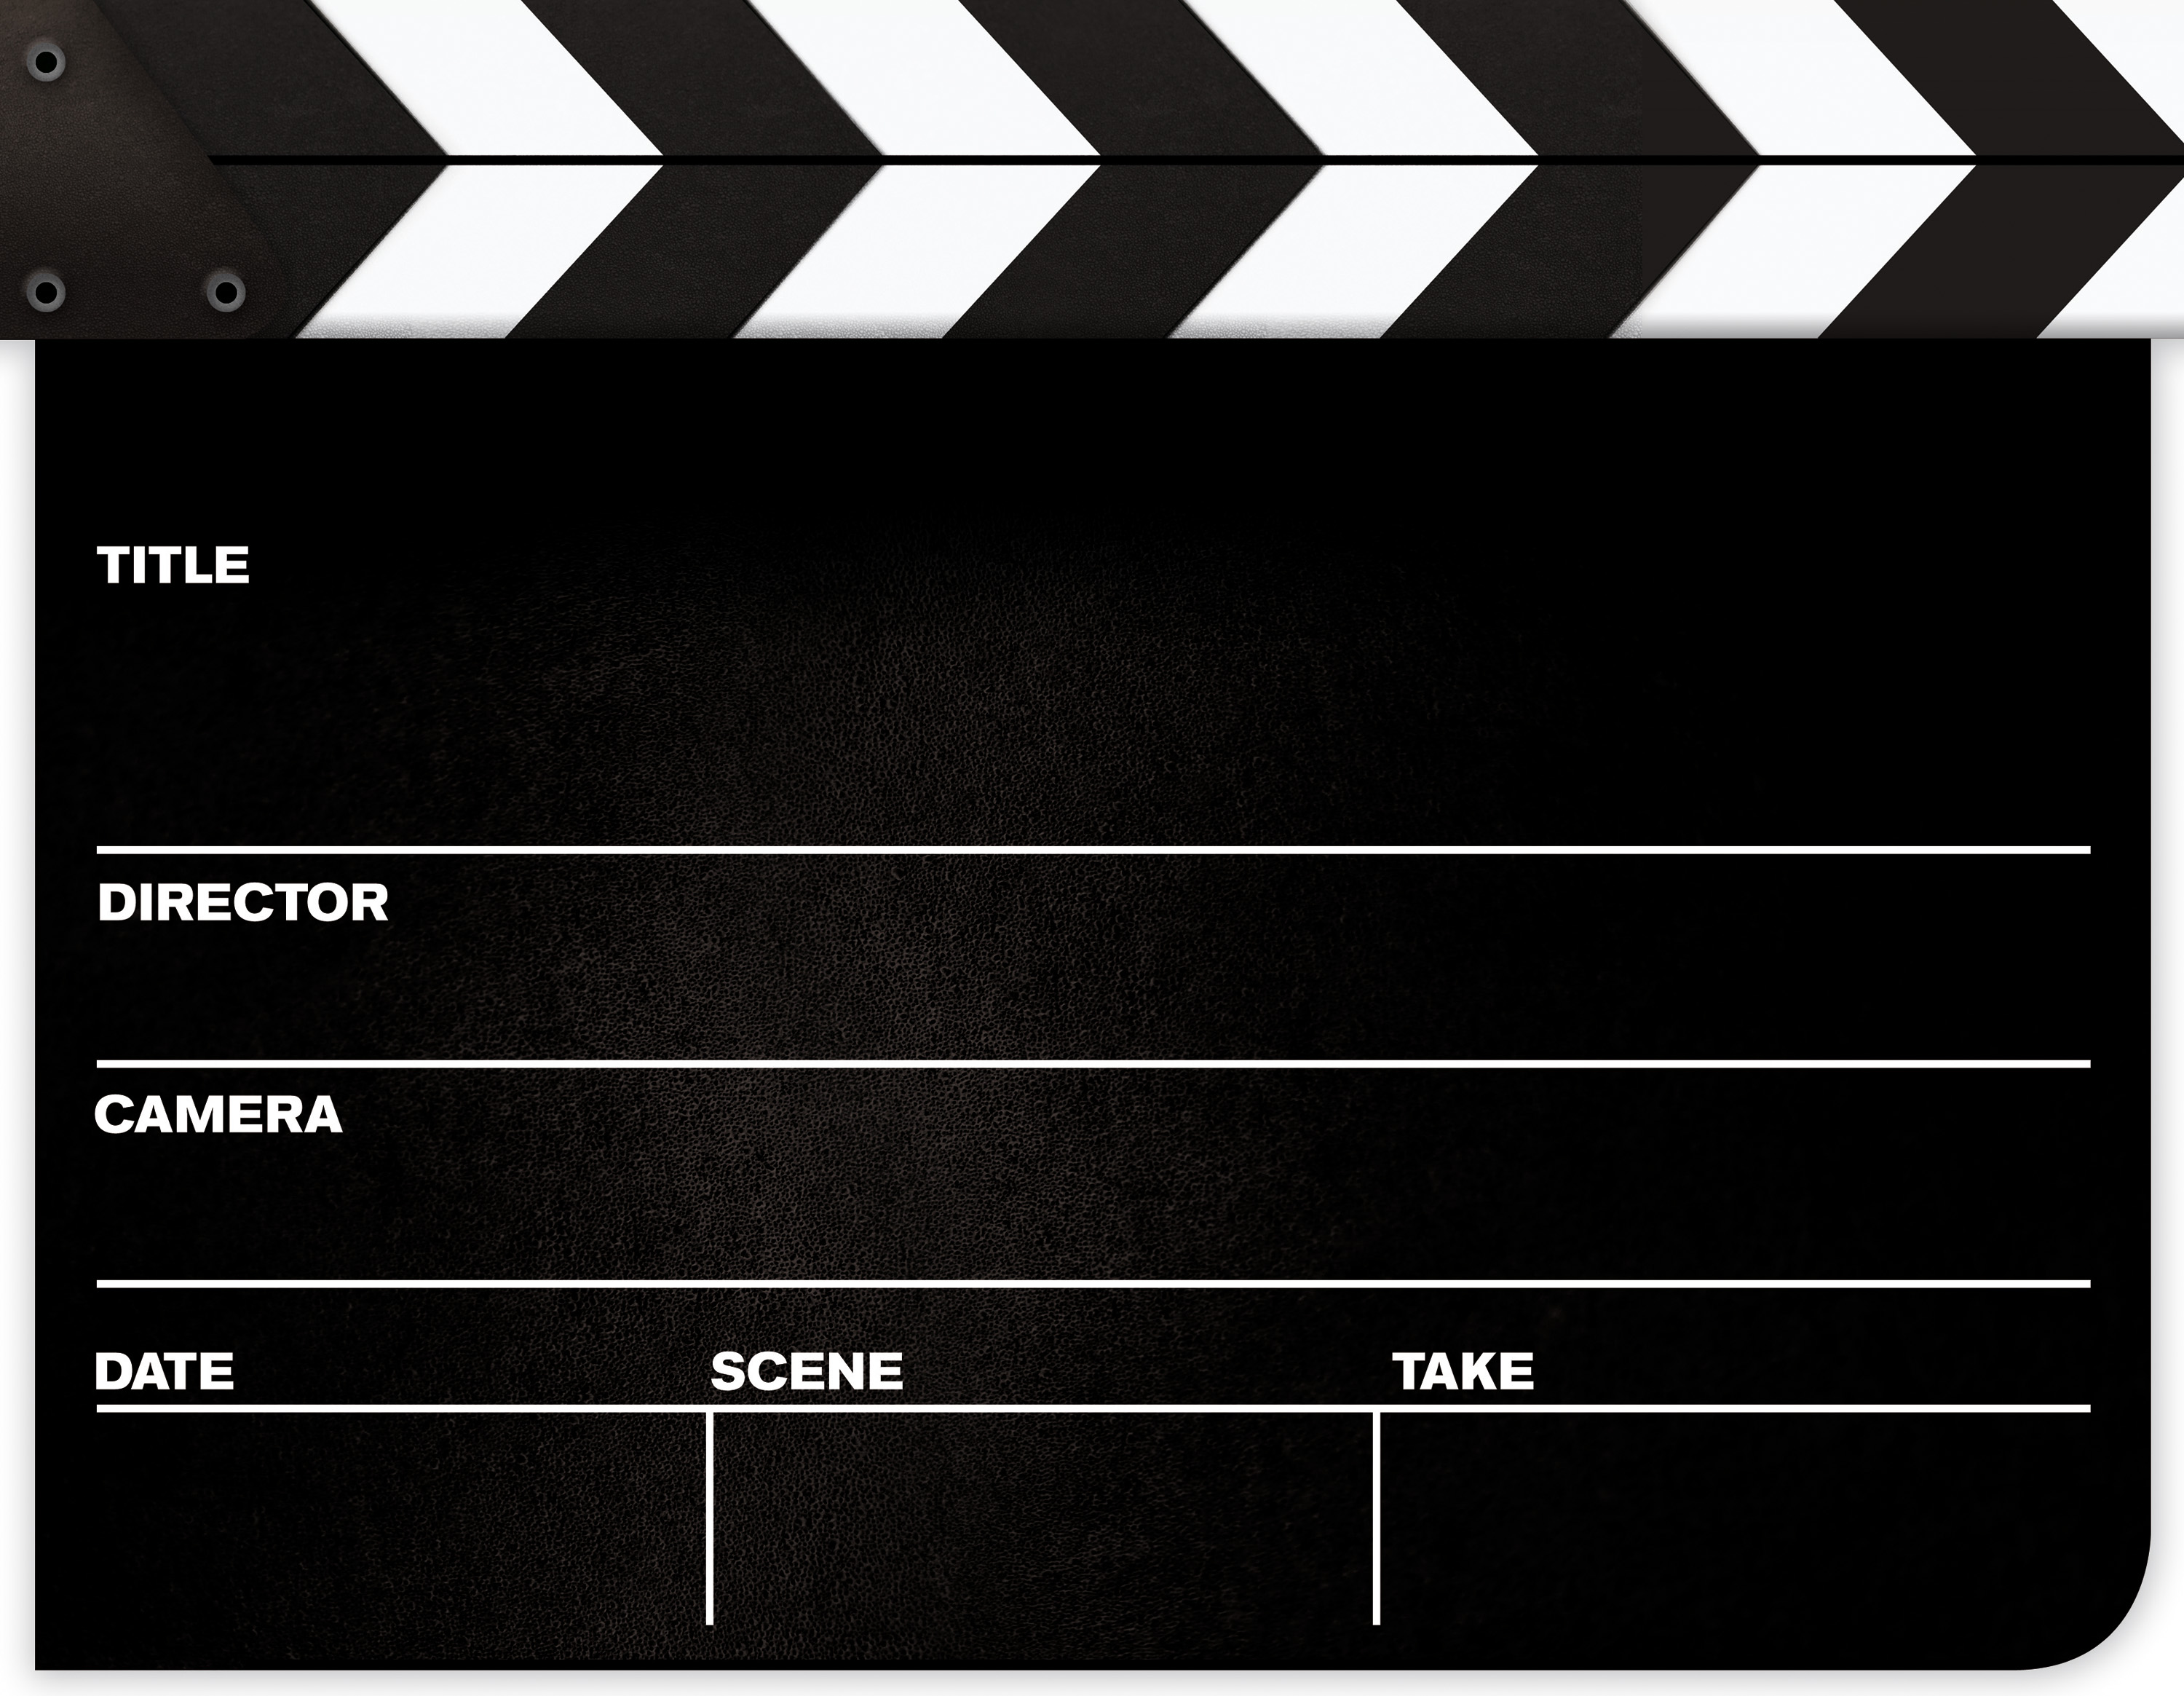 Movie Clapper Board Clipart - Clipart Kid